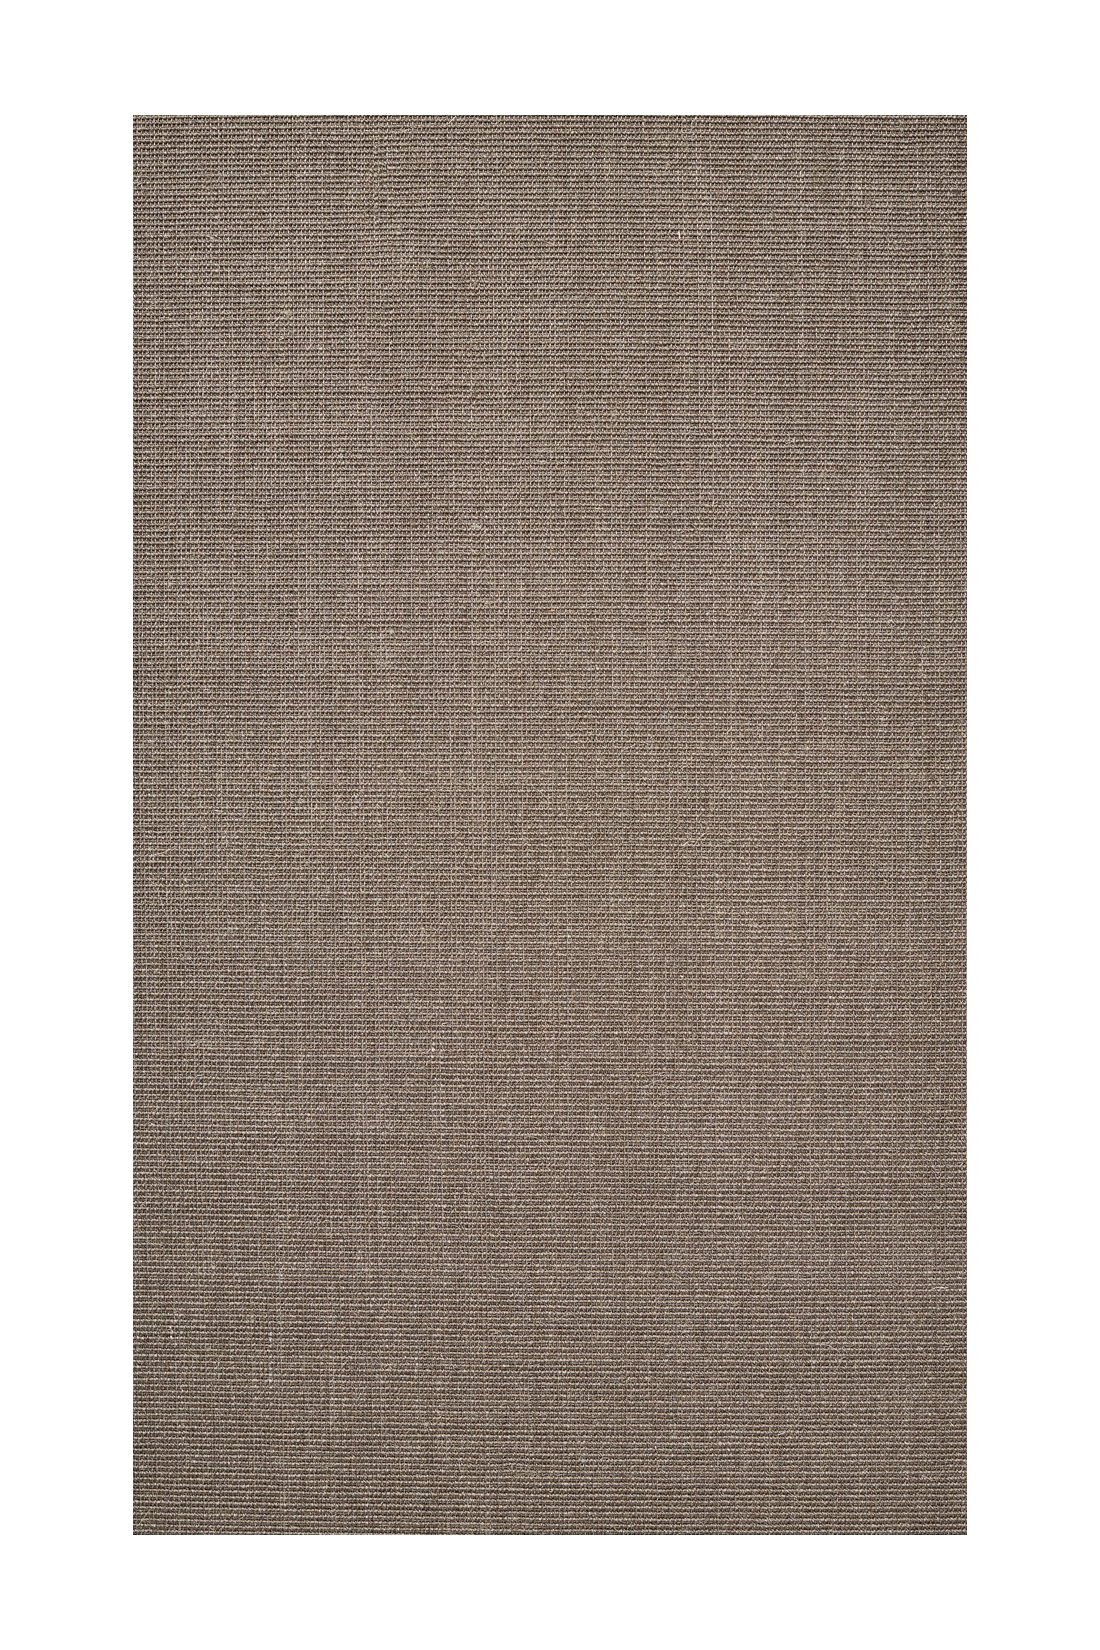 Create A Boucle Sisal Rug Sisal Rugs Direct Intended For Sissel Rugs (Image 4 of 15)